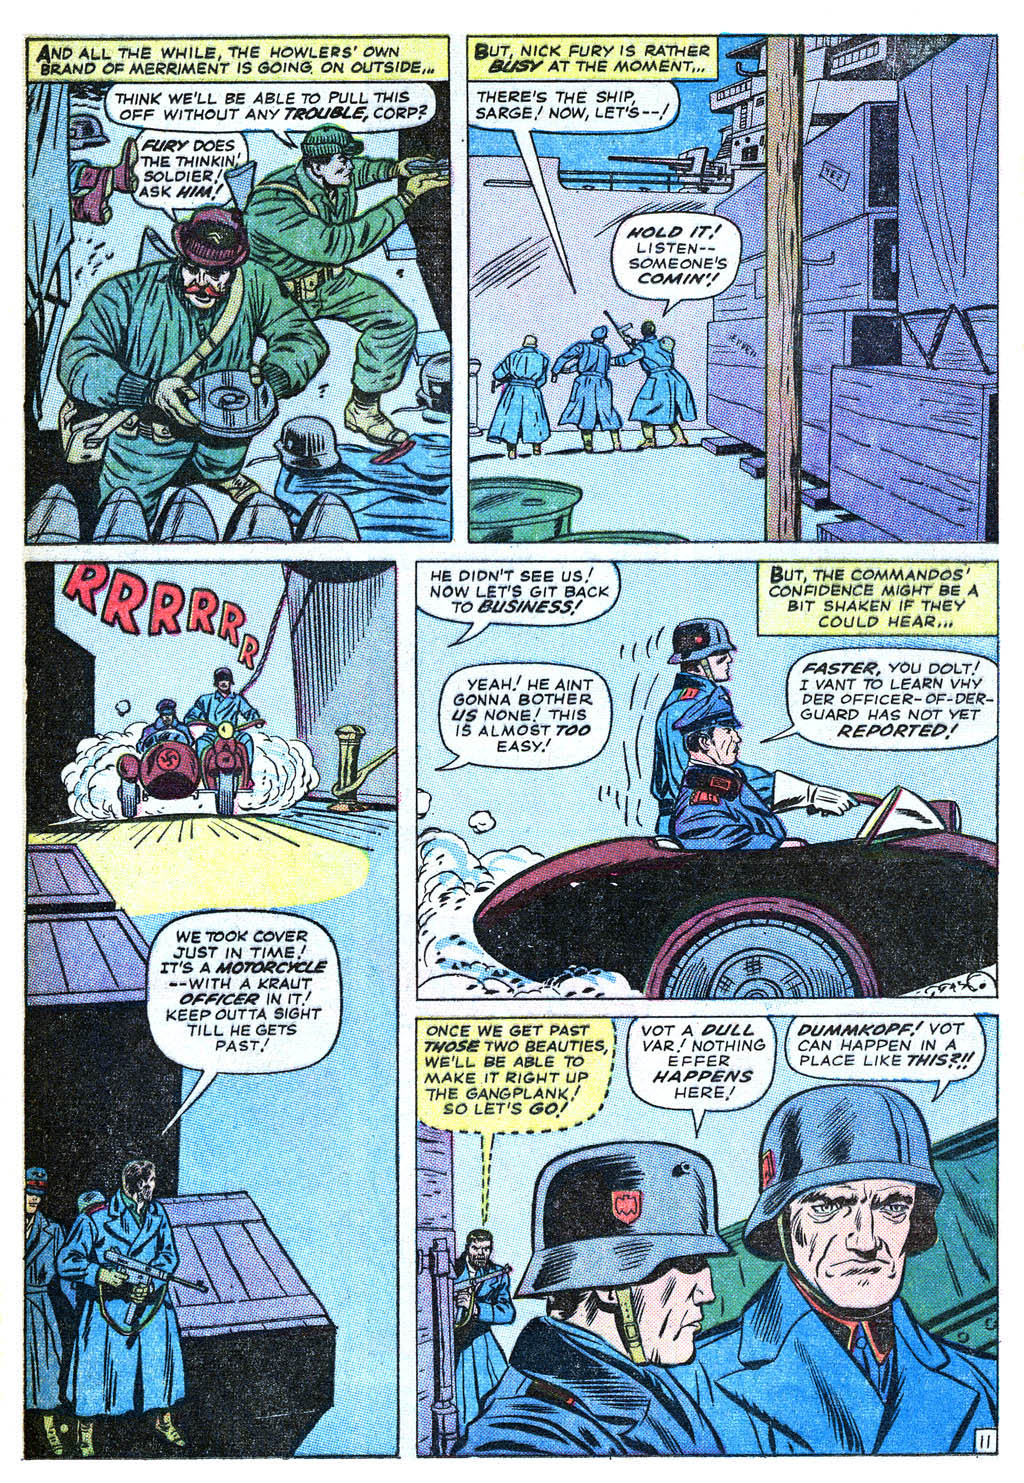 Read online Sgt. Fury comic -  Issue #18 - 16